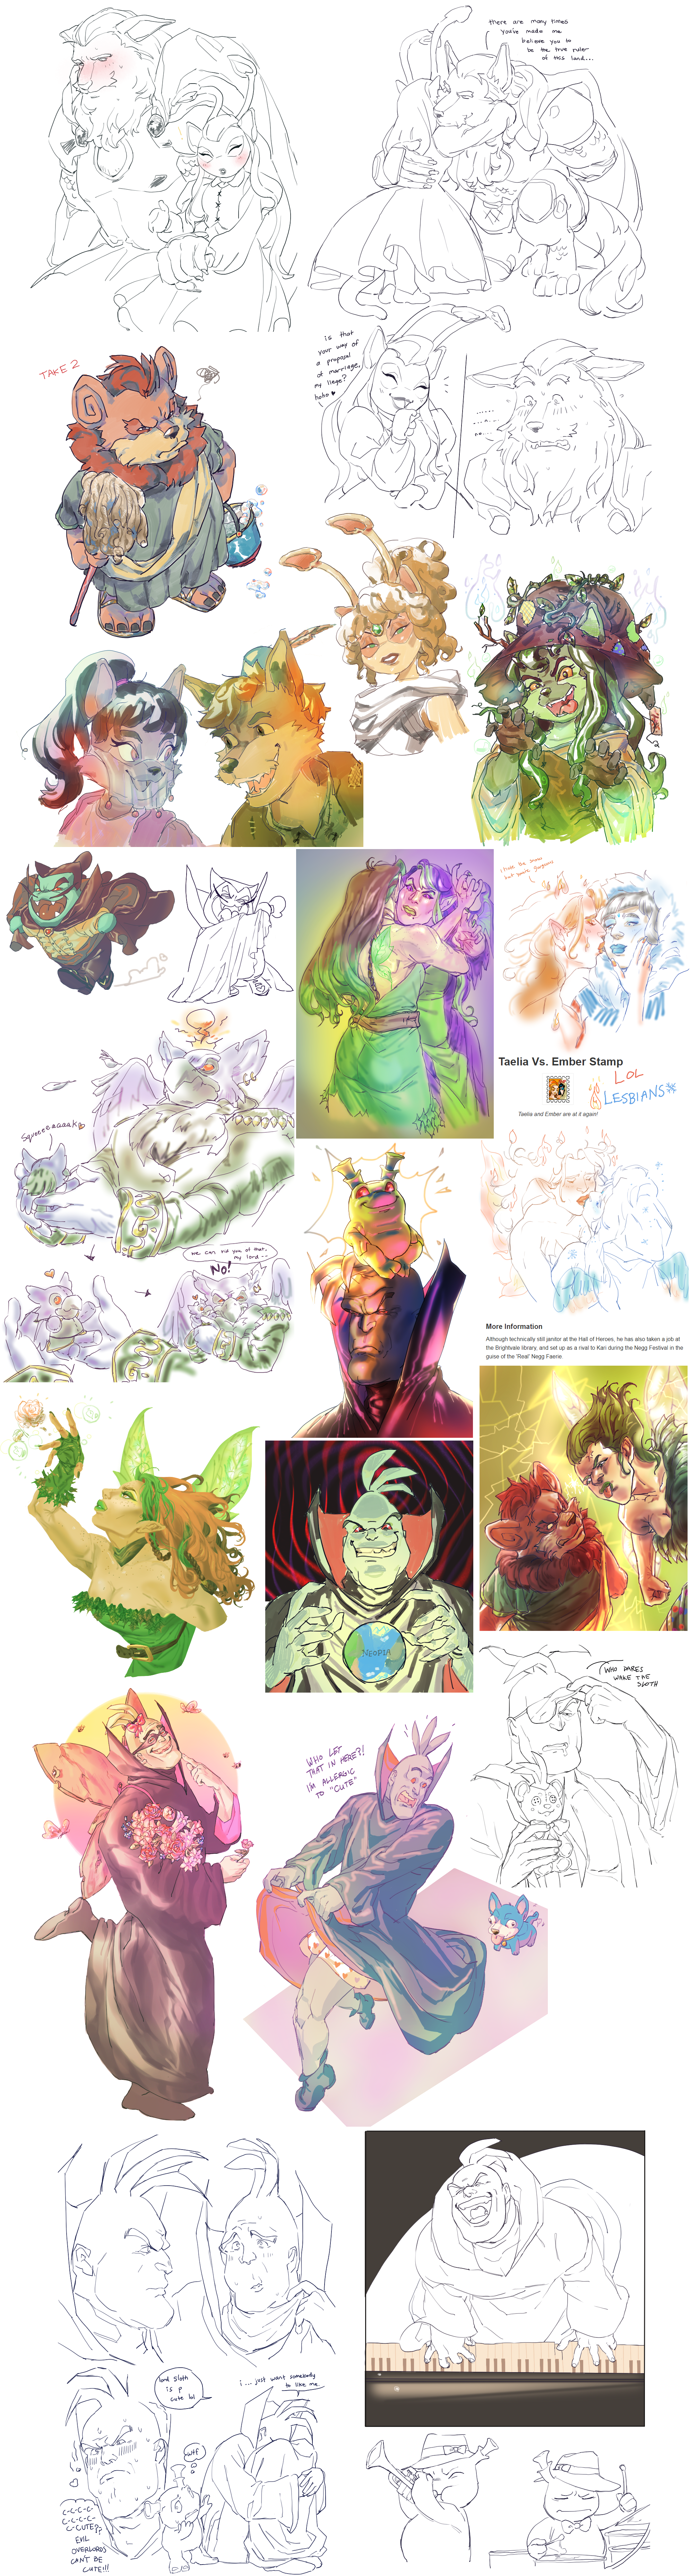 neopets dump by zeewa on DeviantArt